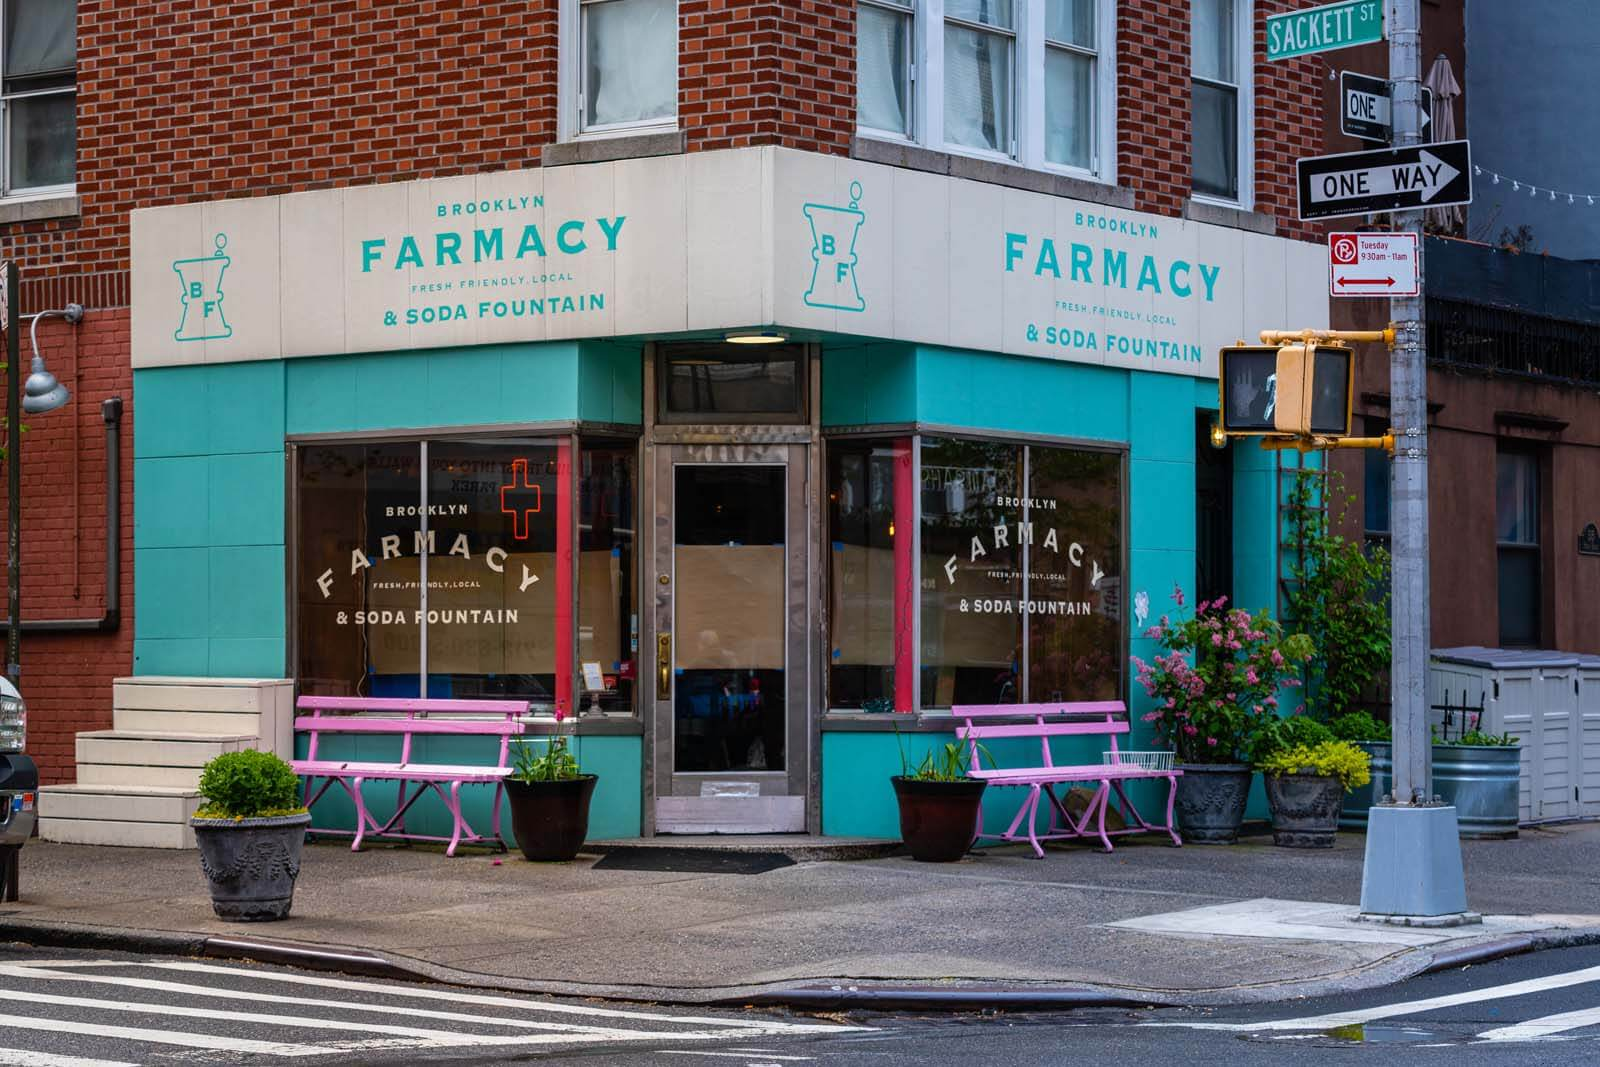 Brooklyn Farmacy and Soda Fountain in Carroll Gardens Brooklyn